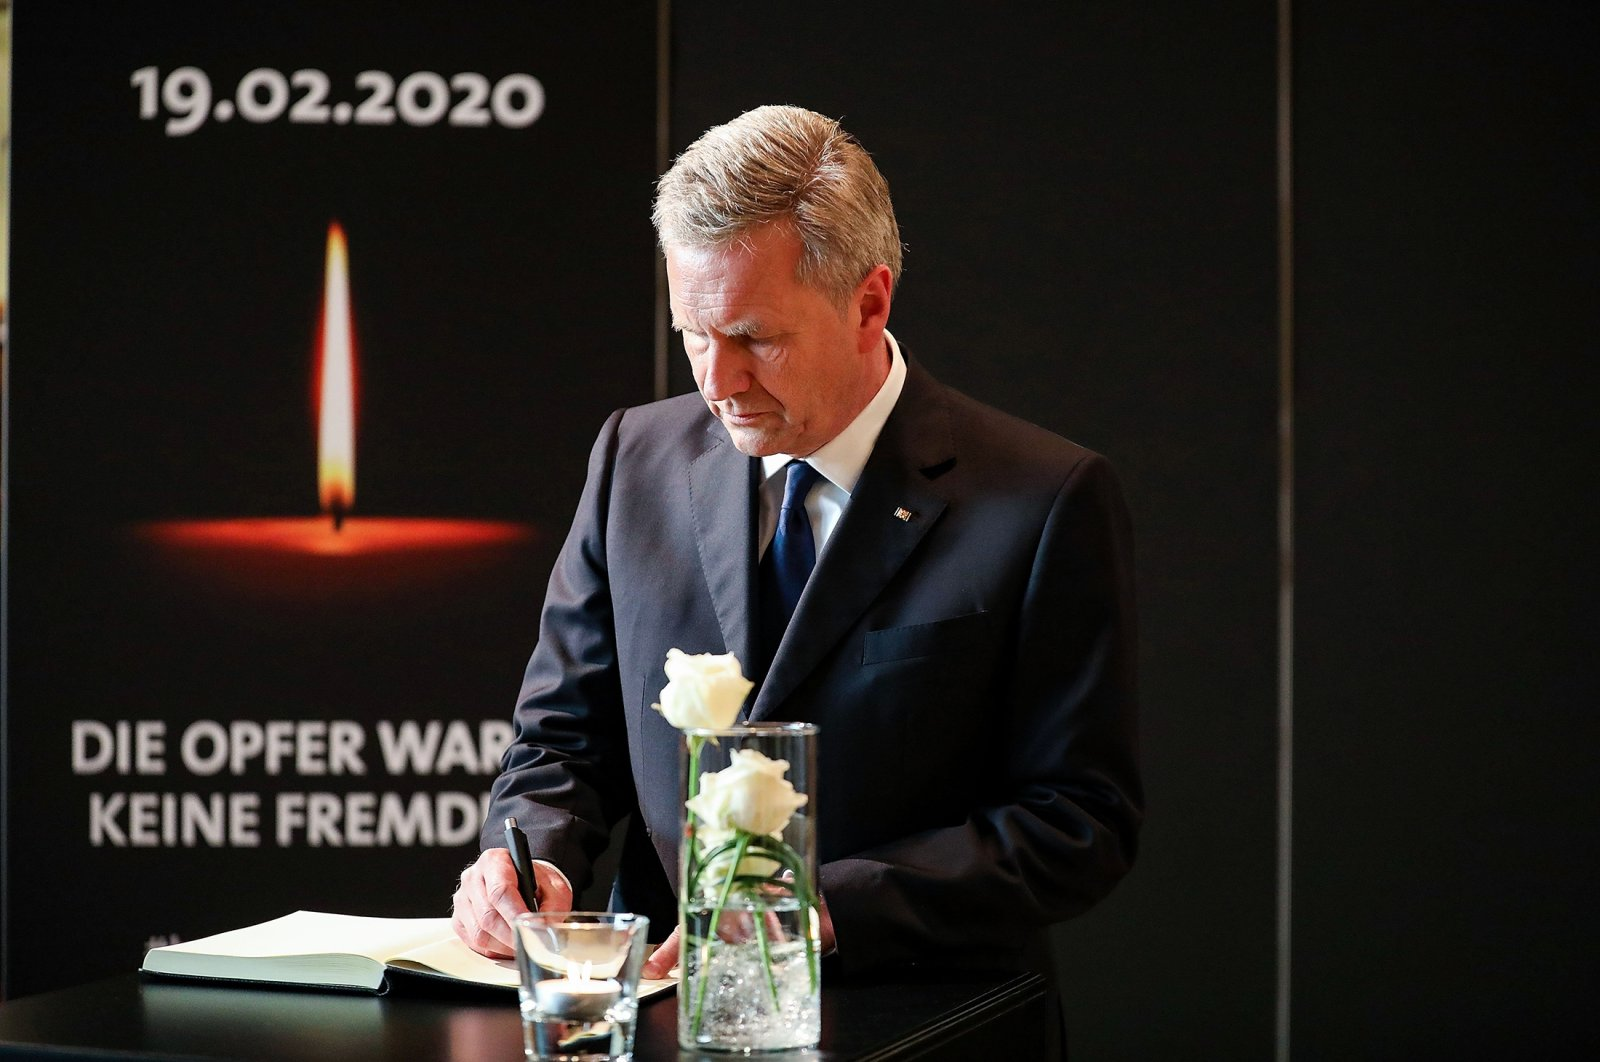 Former German President Christian Wulff during the memorial for the victims of the shooting rampage that killed 11 people in Hanau, Germany, Feb. 4, 2020. (Getty Images)